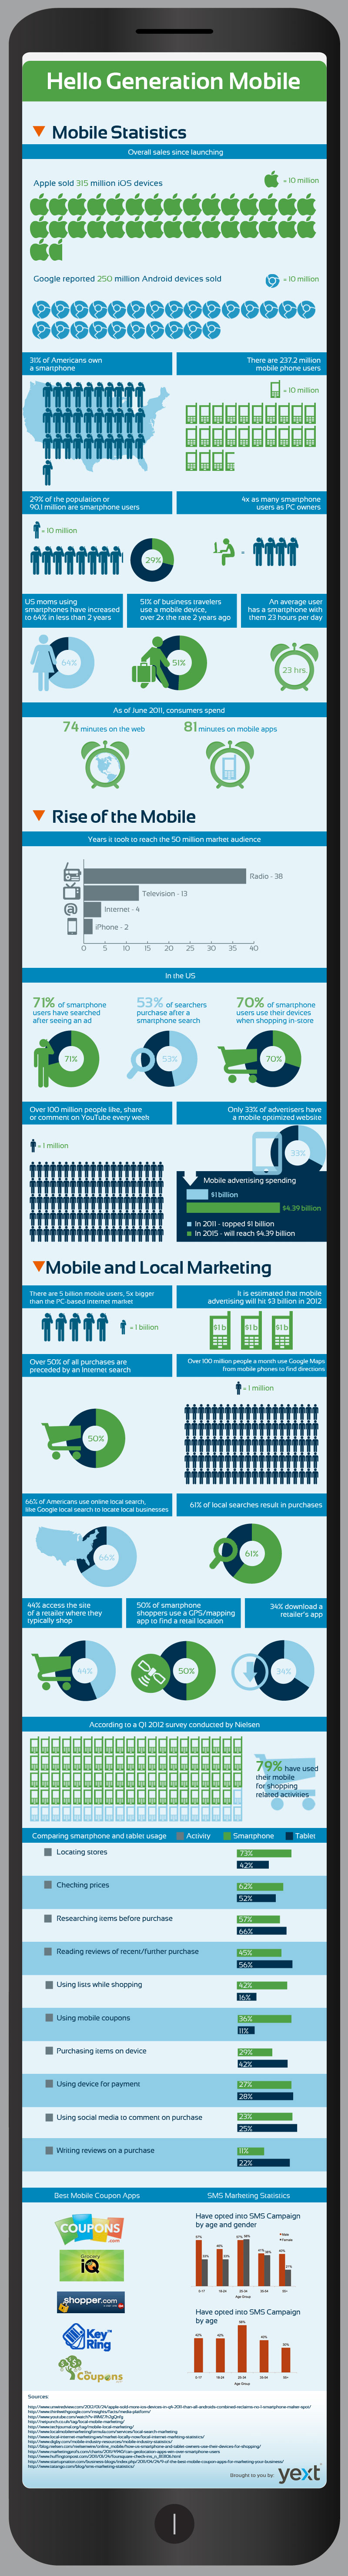 Hello-Generation-Mobile-infographic